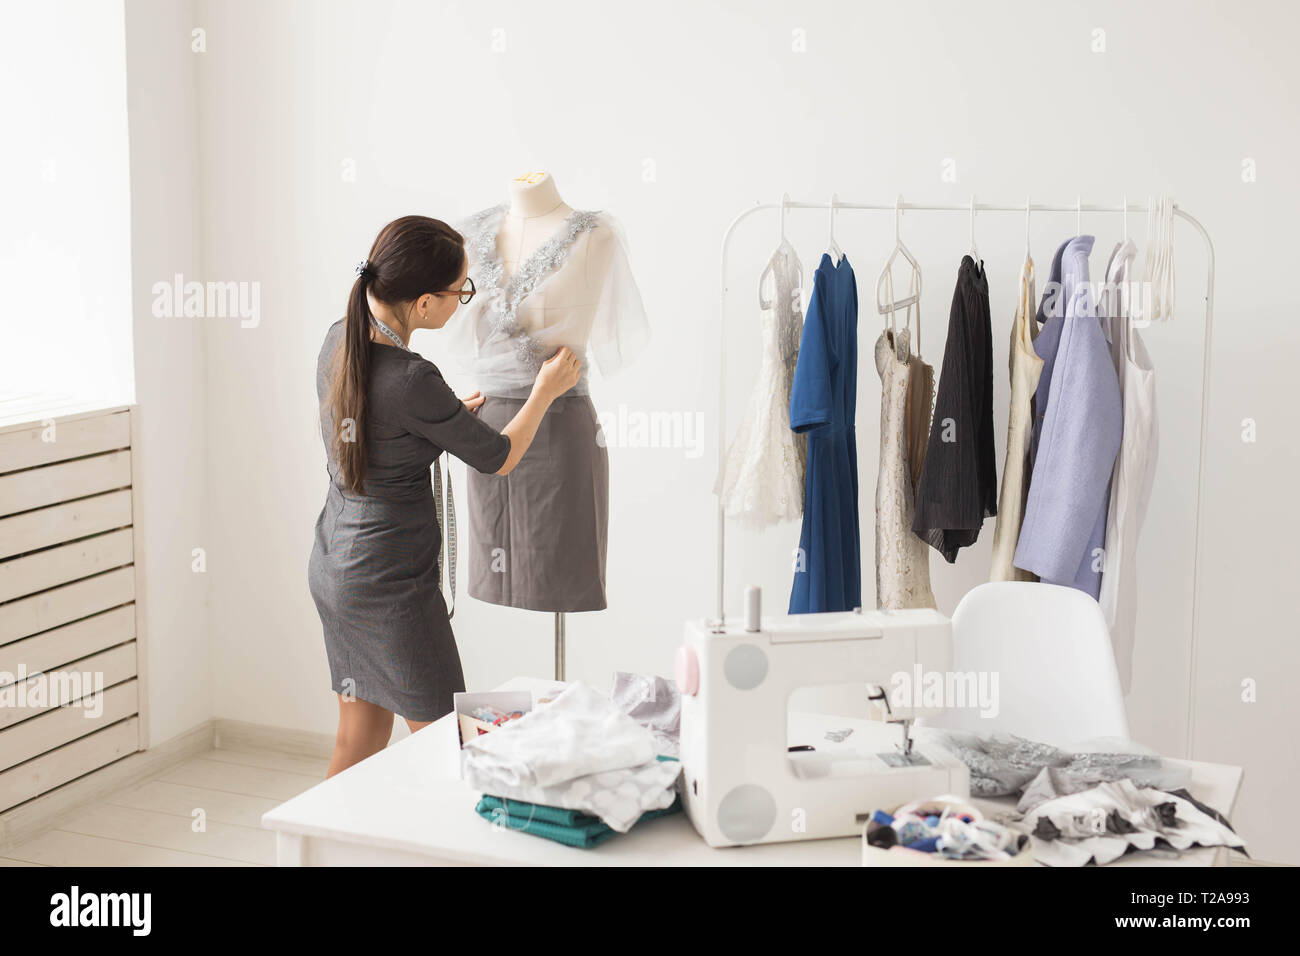 Dressmaker Tailor Fashion And Showroom Concept Side View Of Female Fashion Designer Measuring Materials On Mannequin In Office Stock Photo Alamy